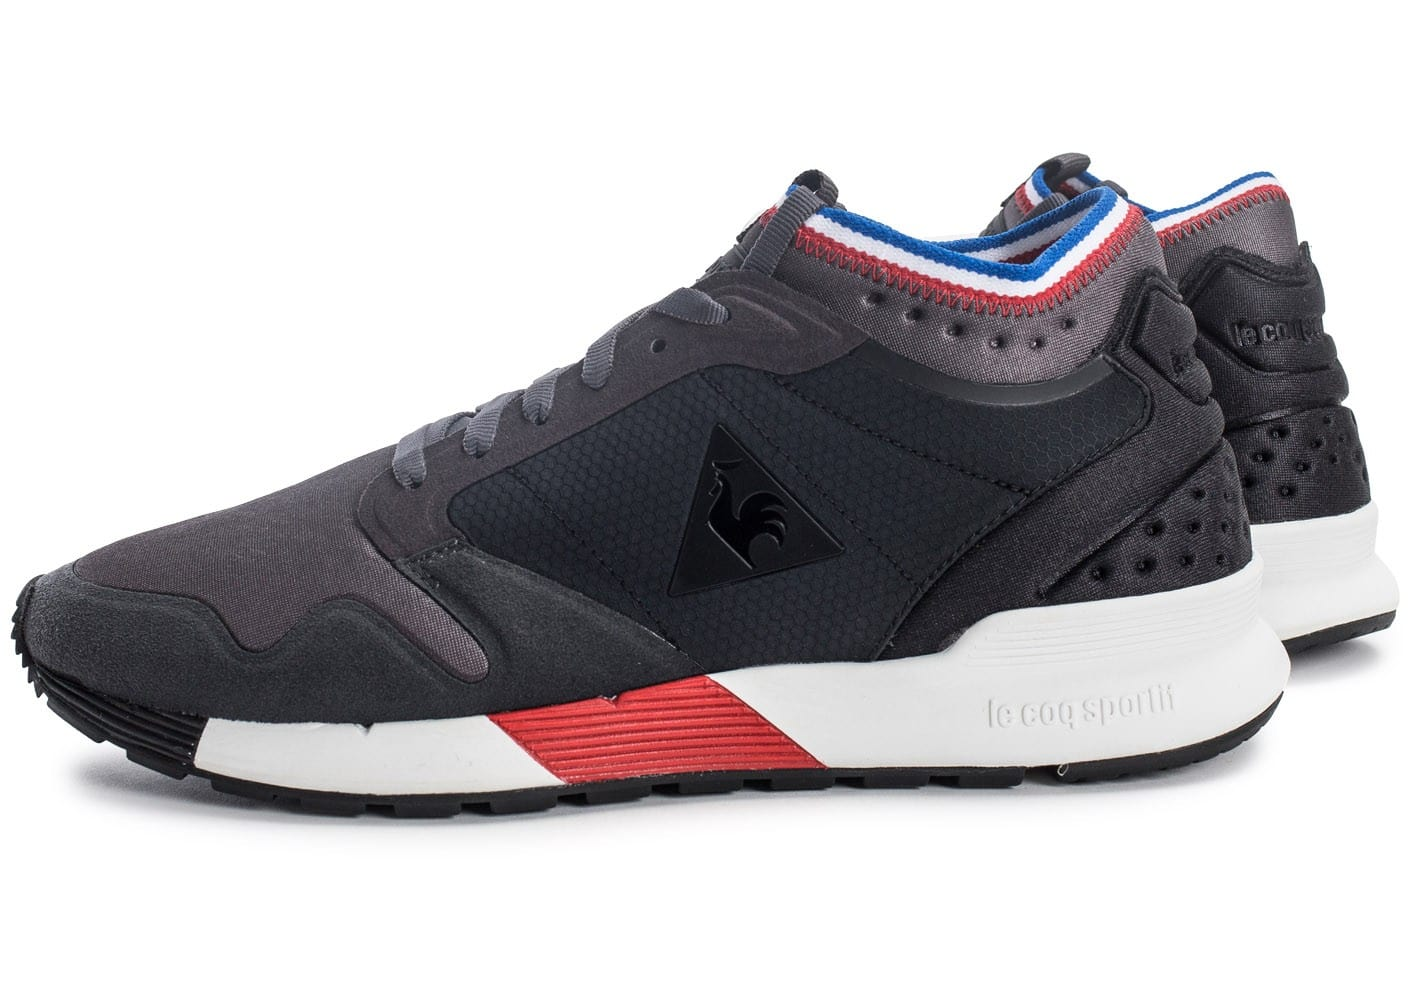 le coq sportif omicron ripstop tricolore chaussures baskets homme chausport. Black Bedroom Furniture Sets. Home Design Ideas